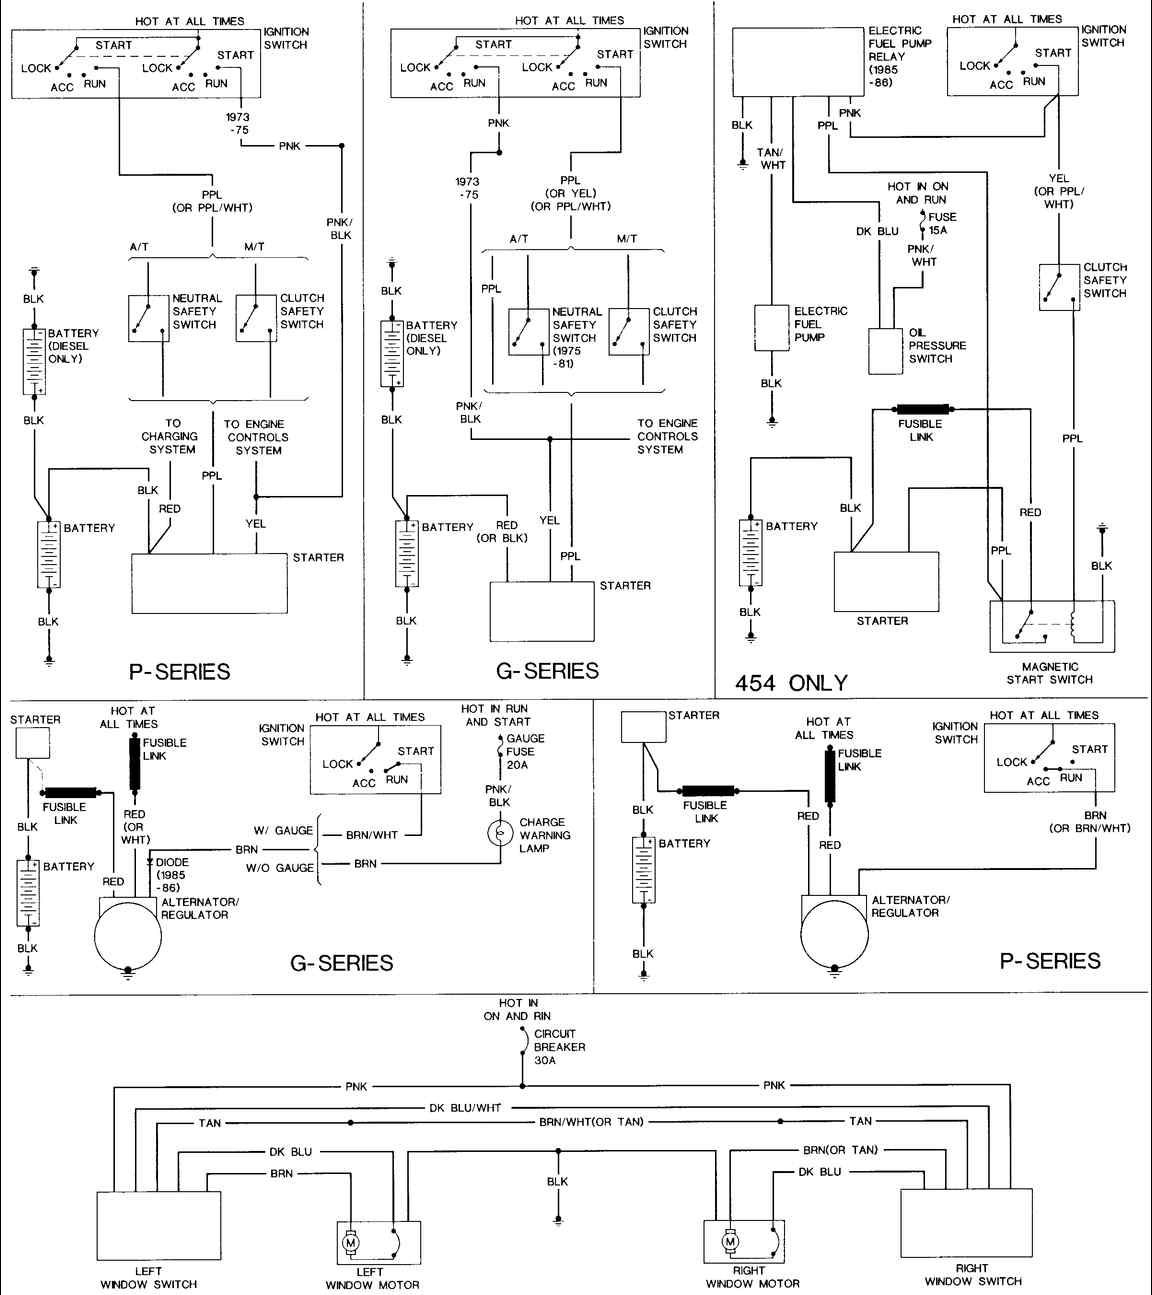 hight resolution of 1979 gmc wiring diagram electrical schematics diagram rh culturetearoom com 1979 yamaha xt500 wiring diagram 1979